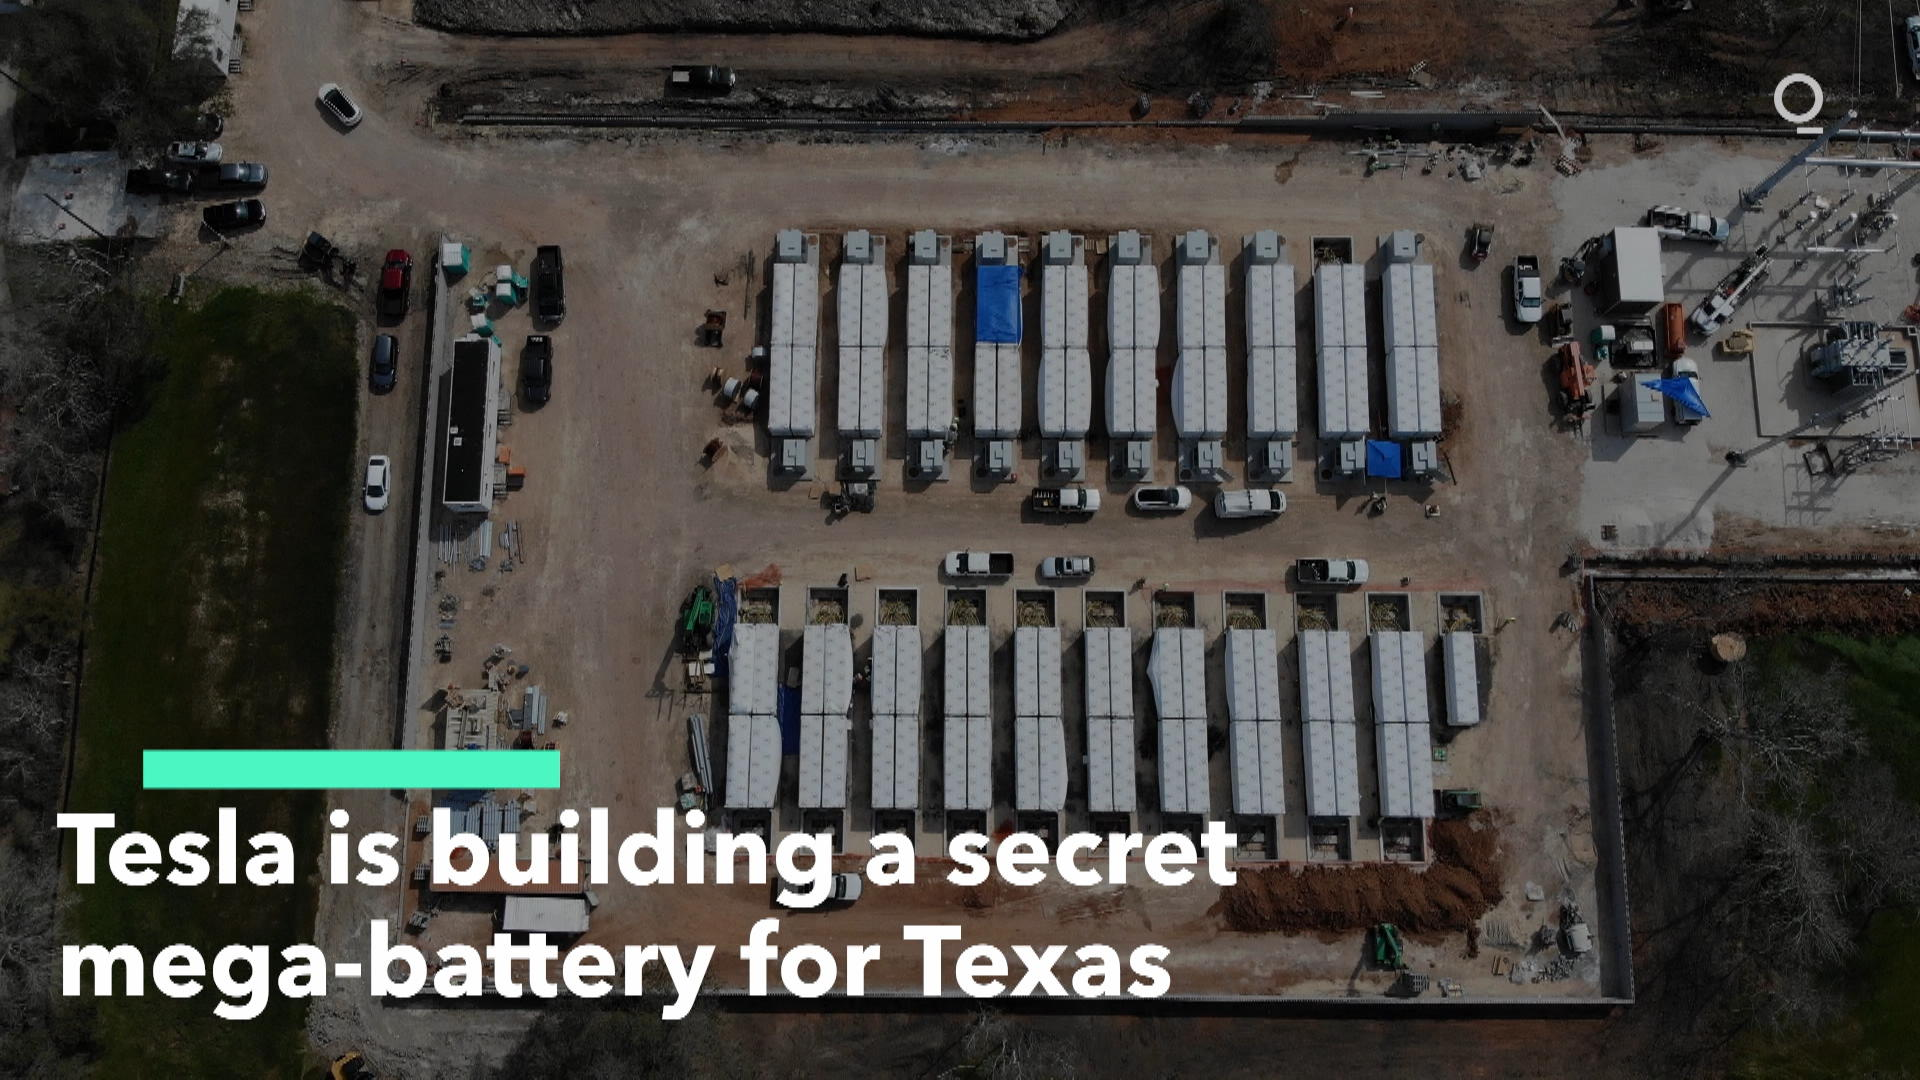 Tesla Builds Secret Mega-Battery - Bloomberg